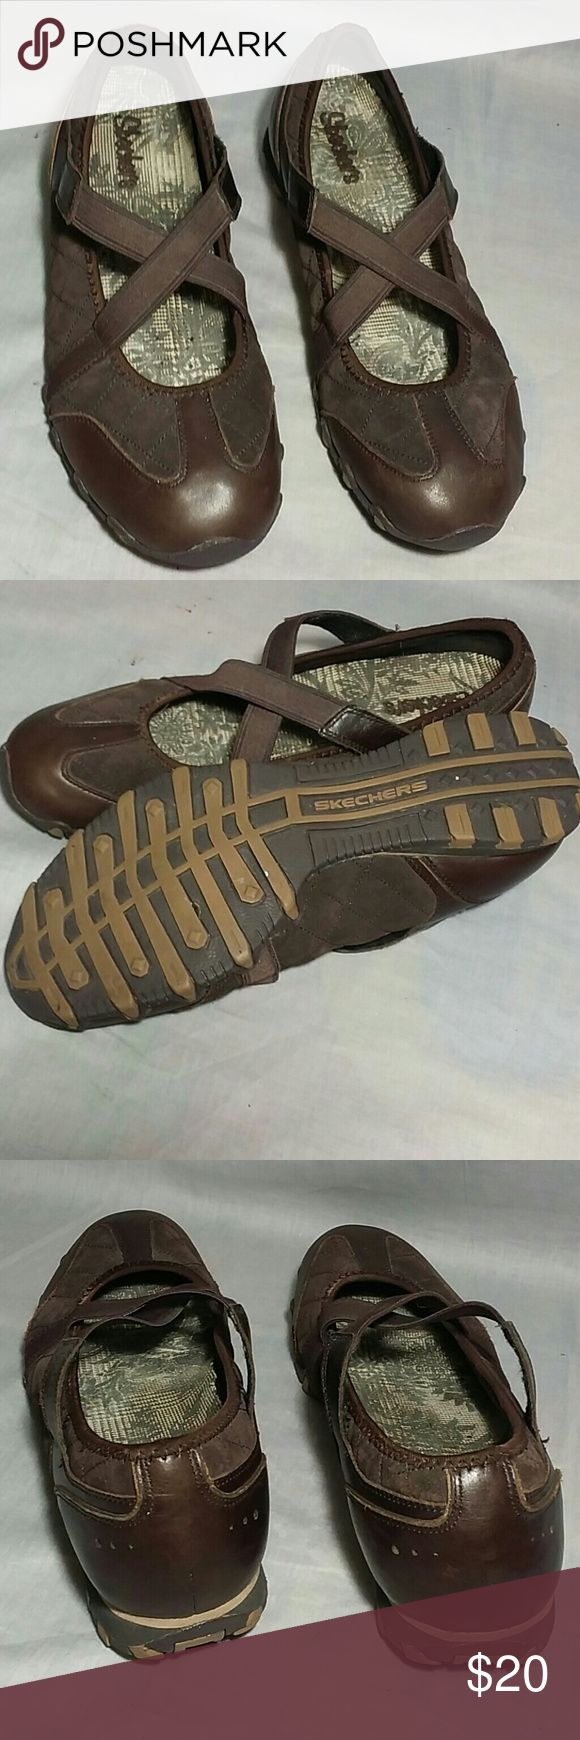 Skechers Shoes Brown 10 M Leather Upper Item is in a good condition, NO PETS AND SMOKE FREE HOME. skechers  Shoes